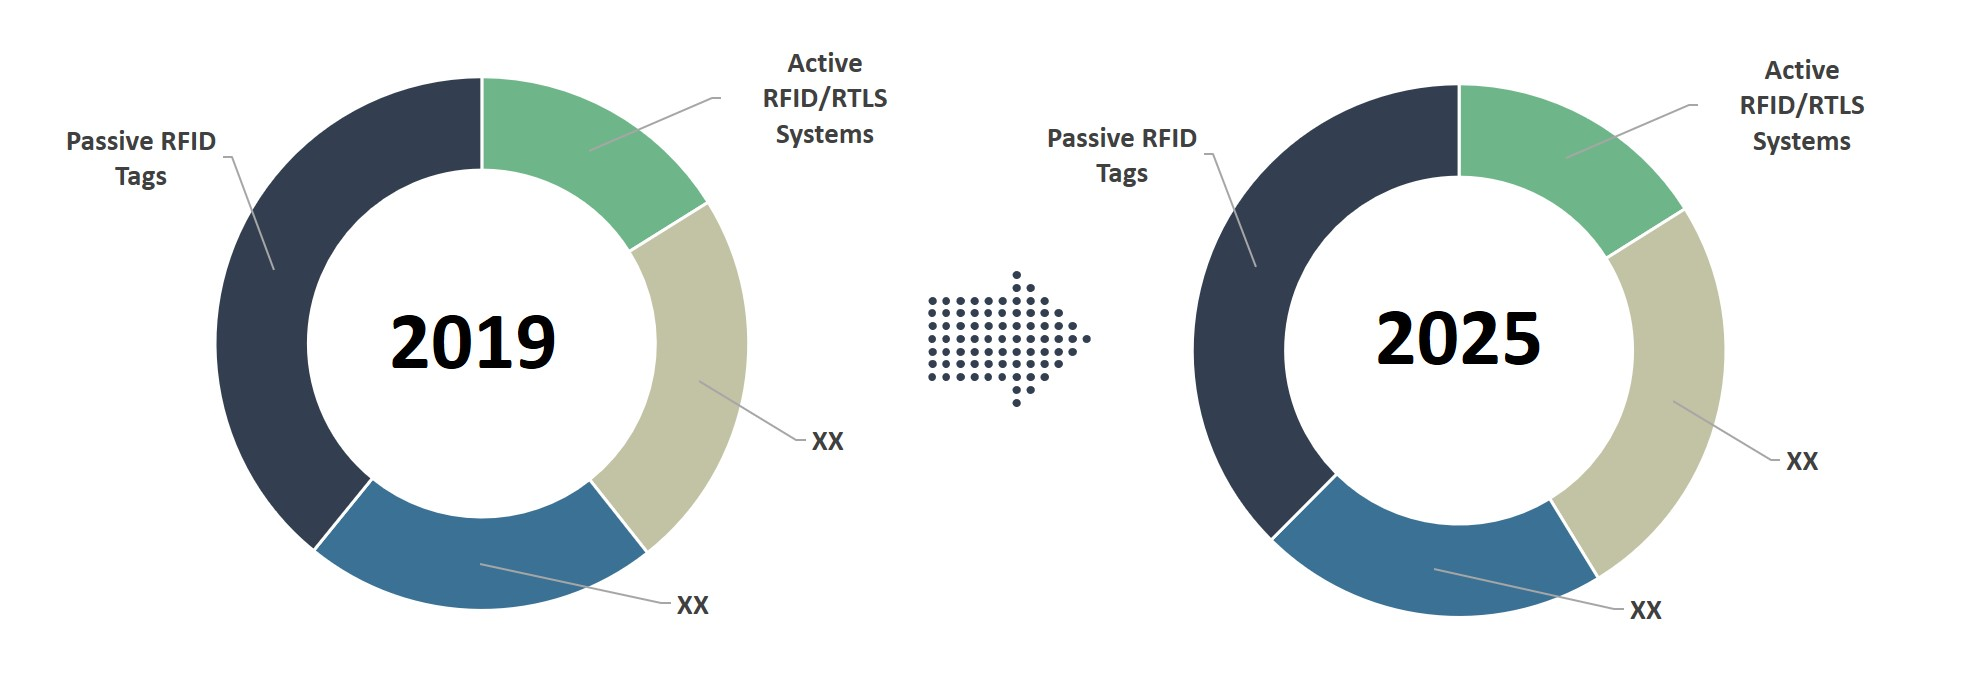 asia pacific rfid market